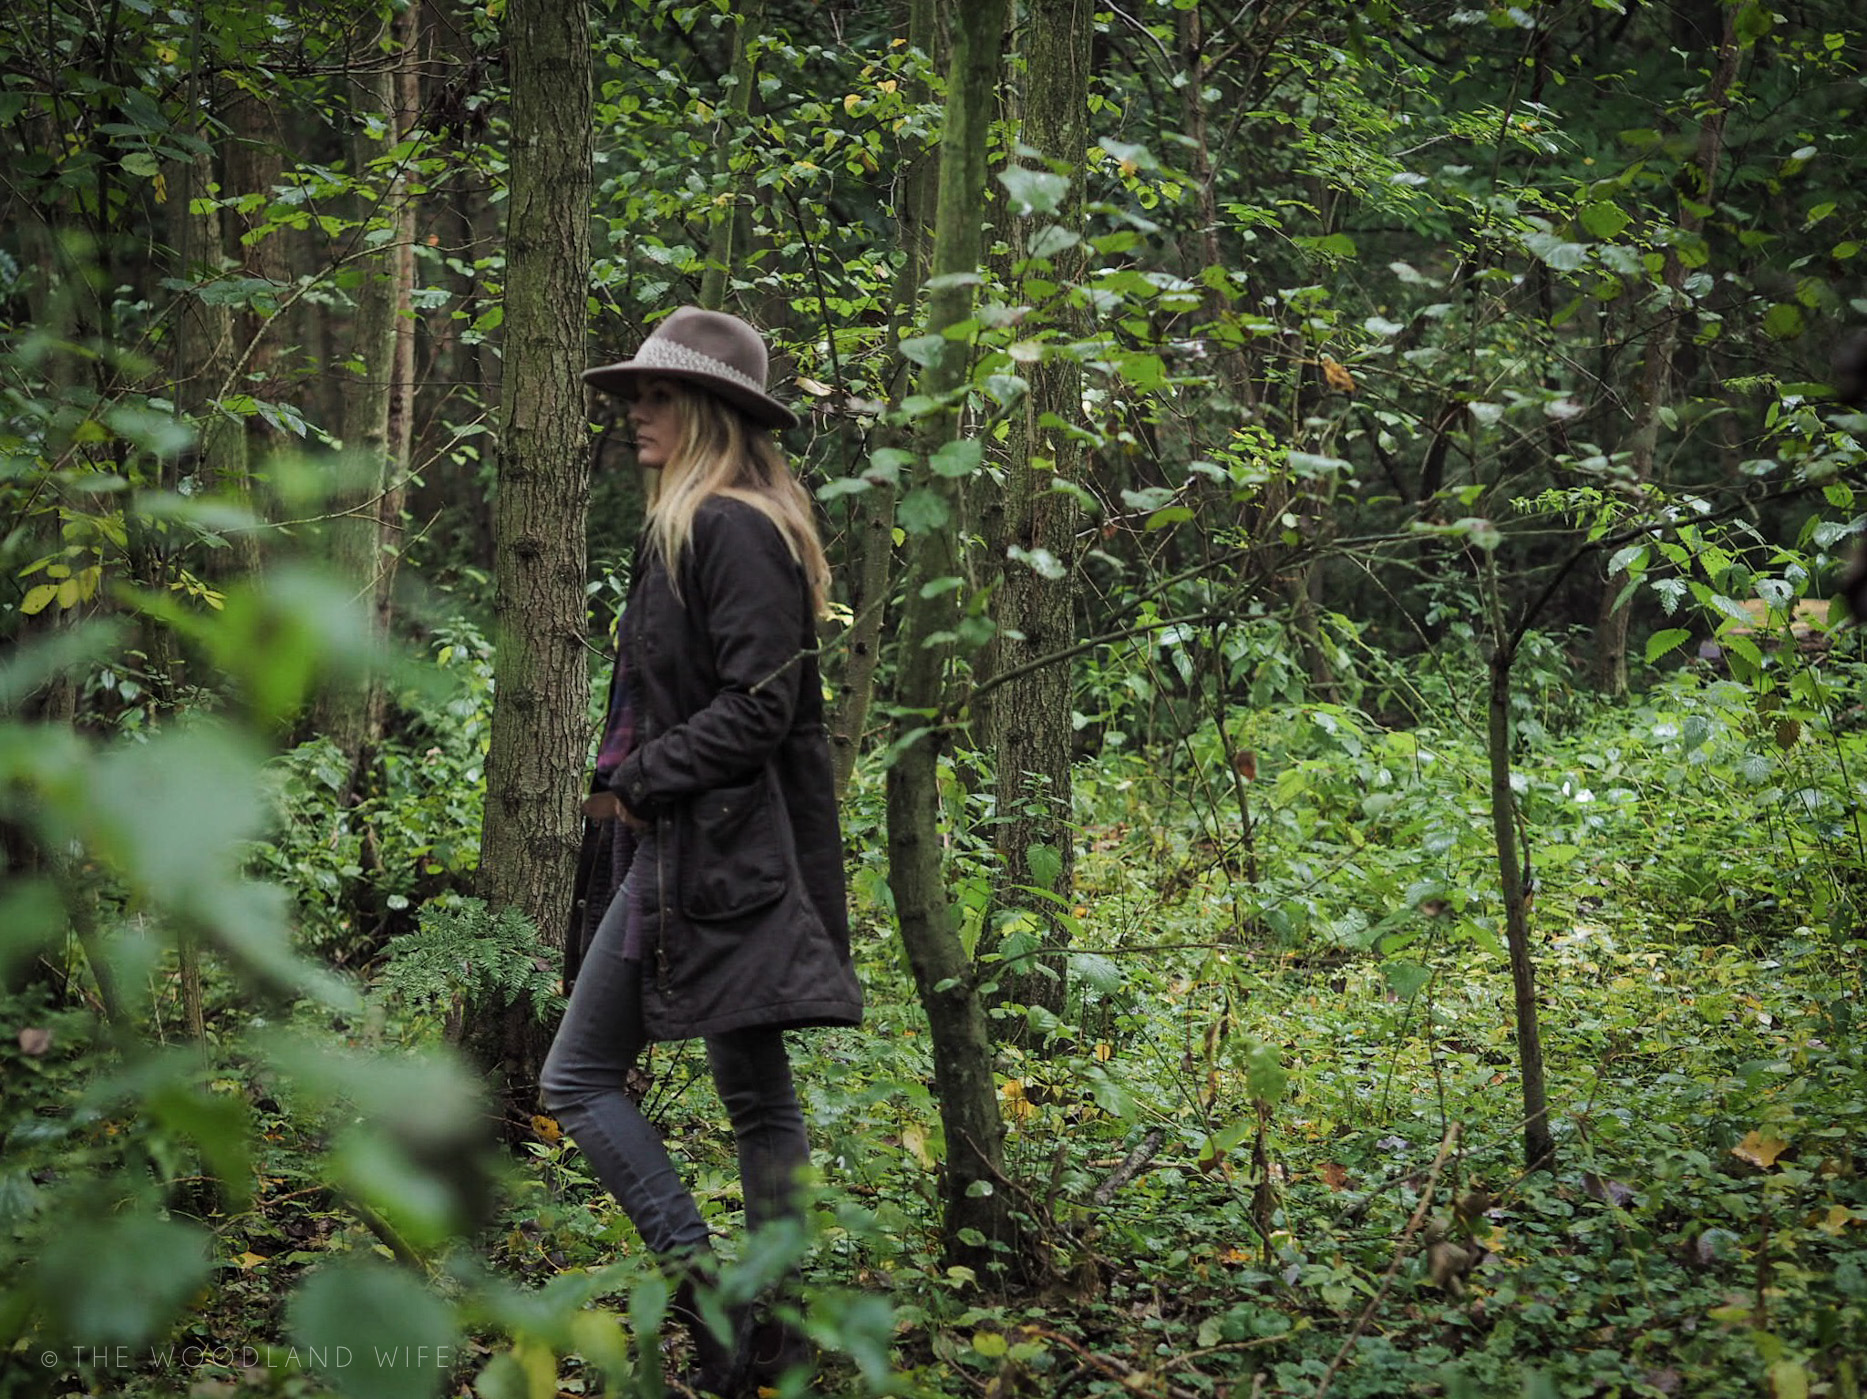 The Woodland Wife - Fat Face - AW17 Womens Clothing - AW17 Childrens Clothing - Sustainable Collection